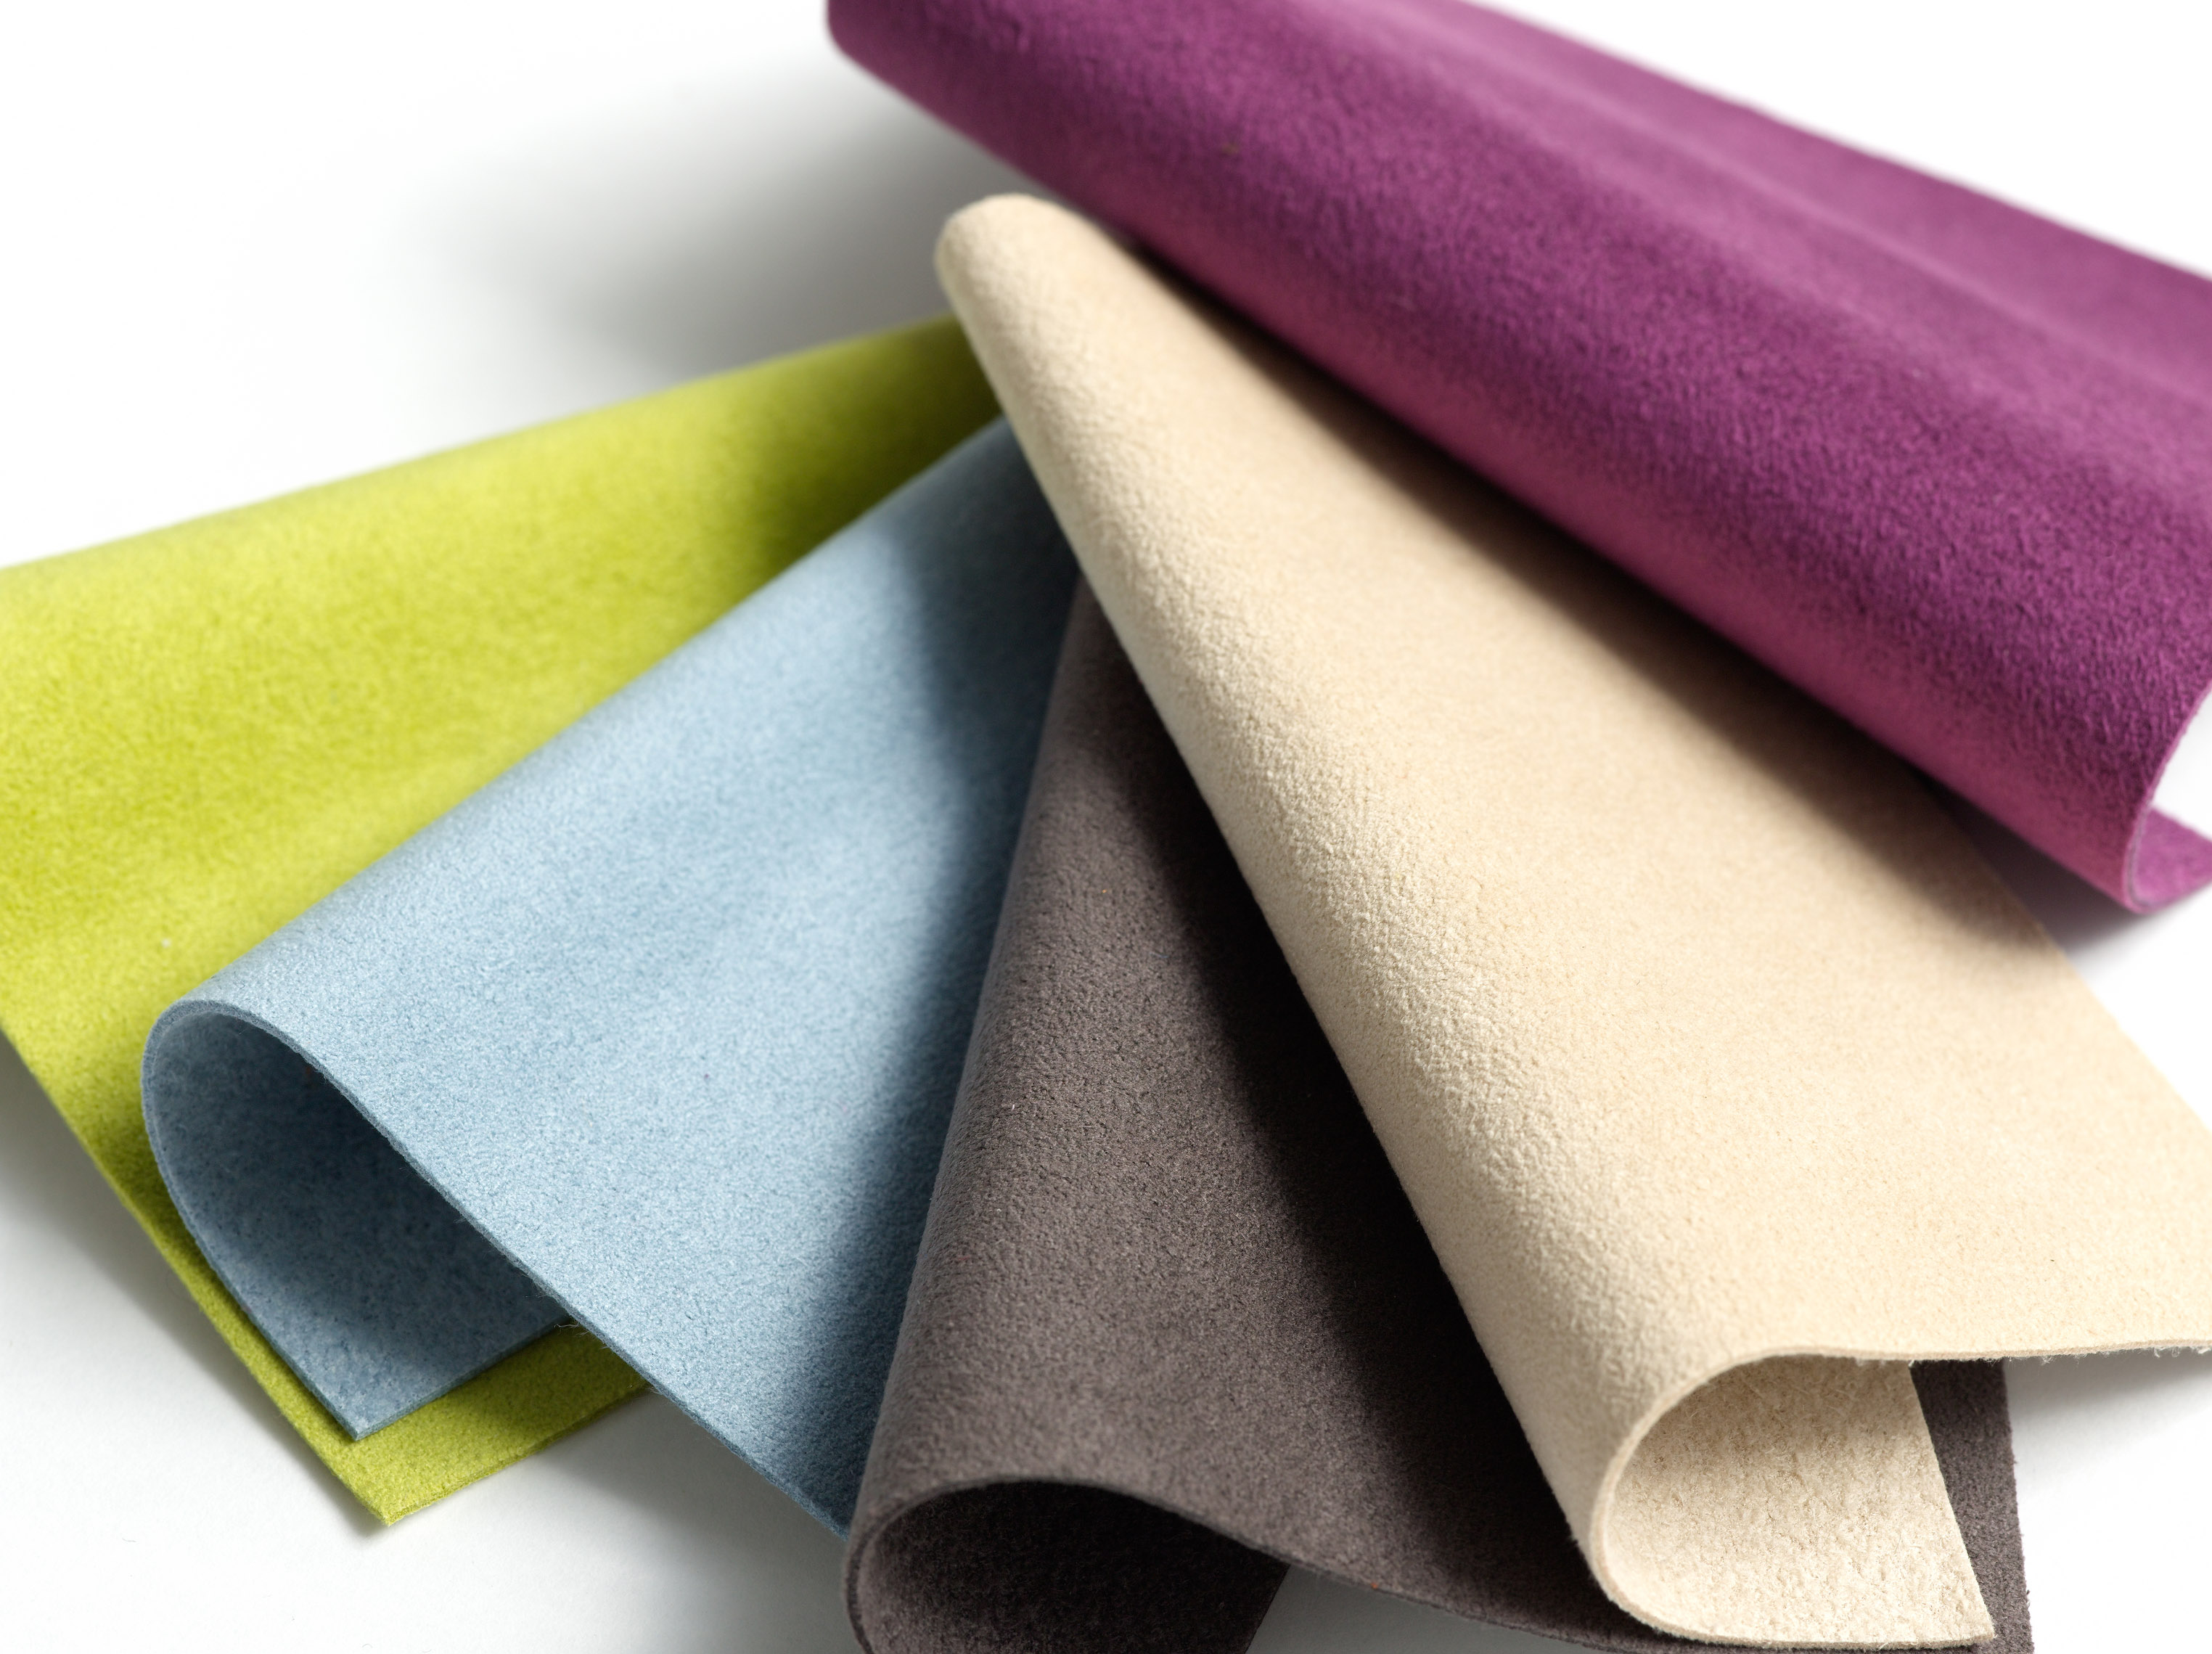 Ultra suede samples. Source: knoll.com